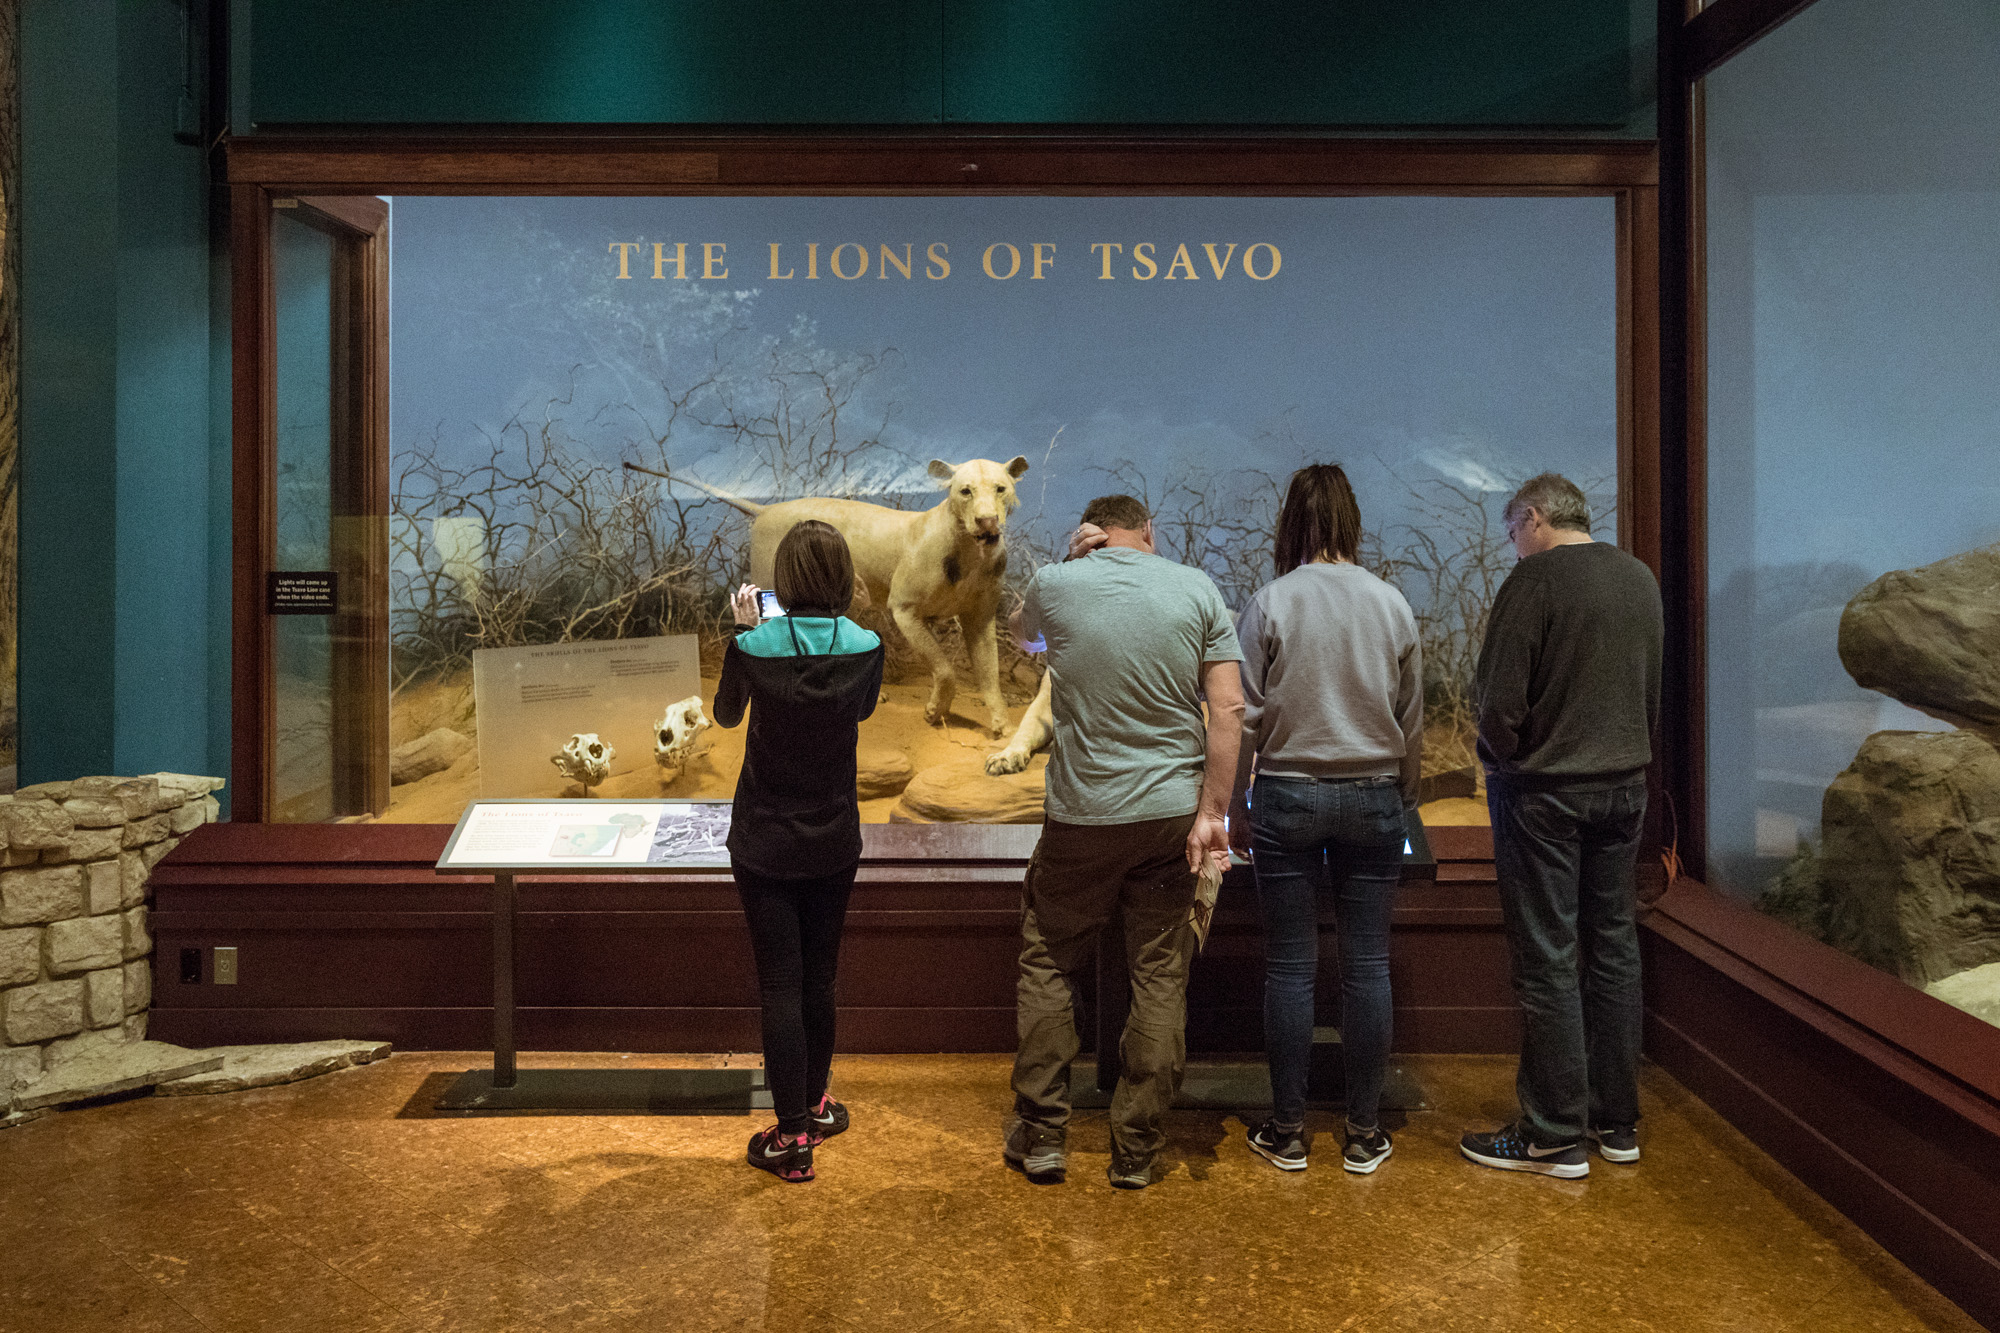 Four visitors stand together in front of two Lions of Tsavo dioramas. The leftmost visitor takes a picture of two lion skulls displayed on pedestals near the lions inside the diorama case.